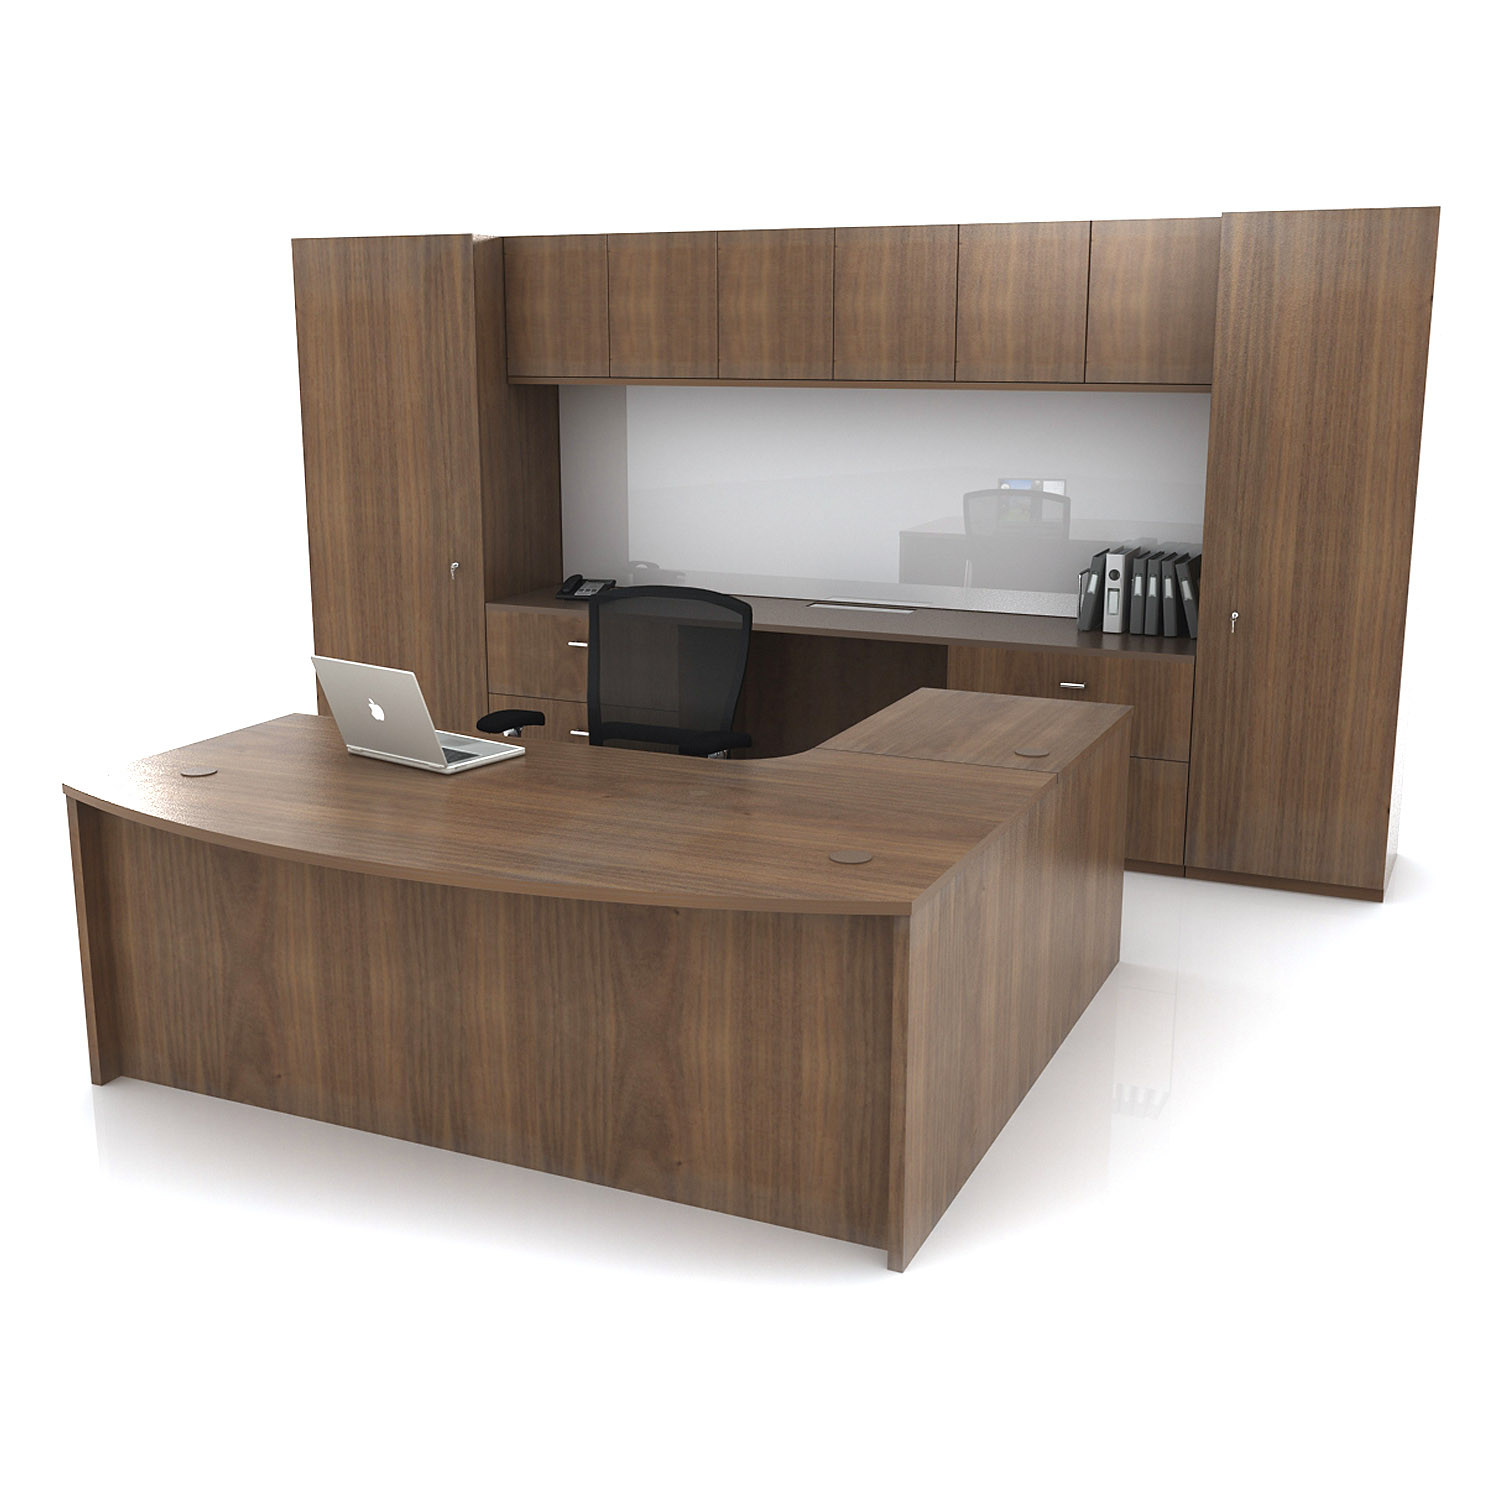 WJ White Bespoke Workwall Desk and Storage